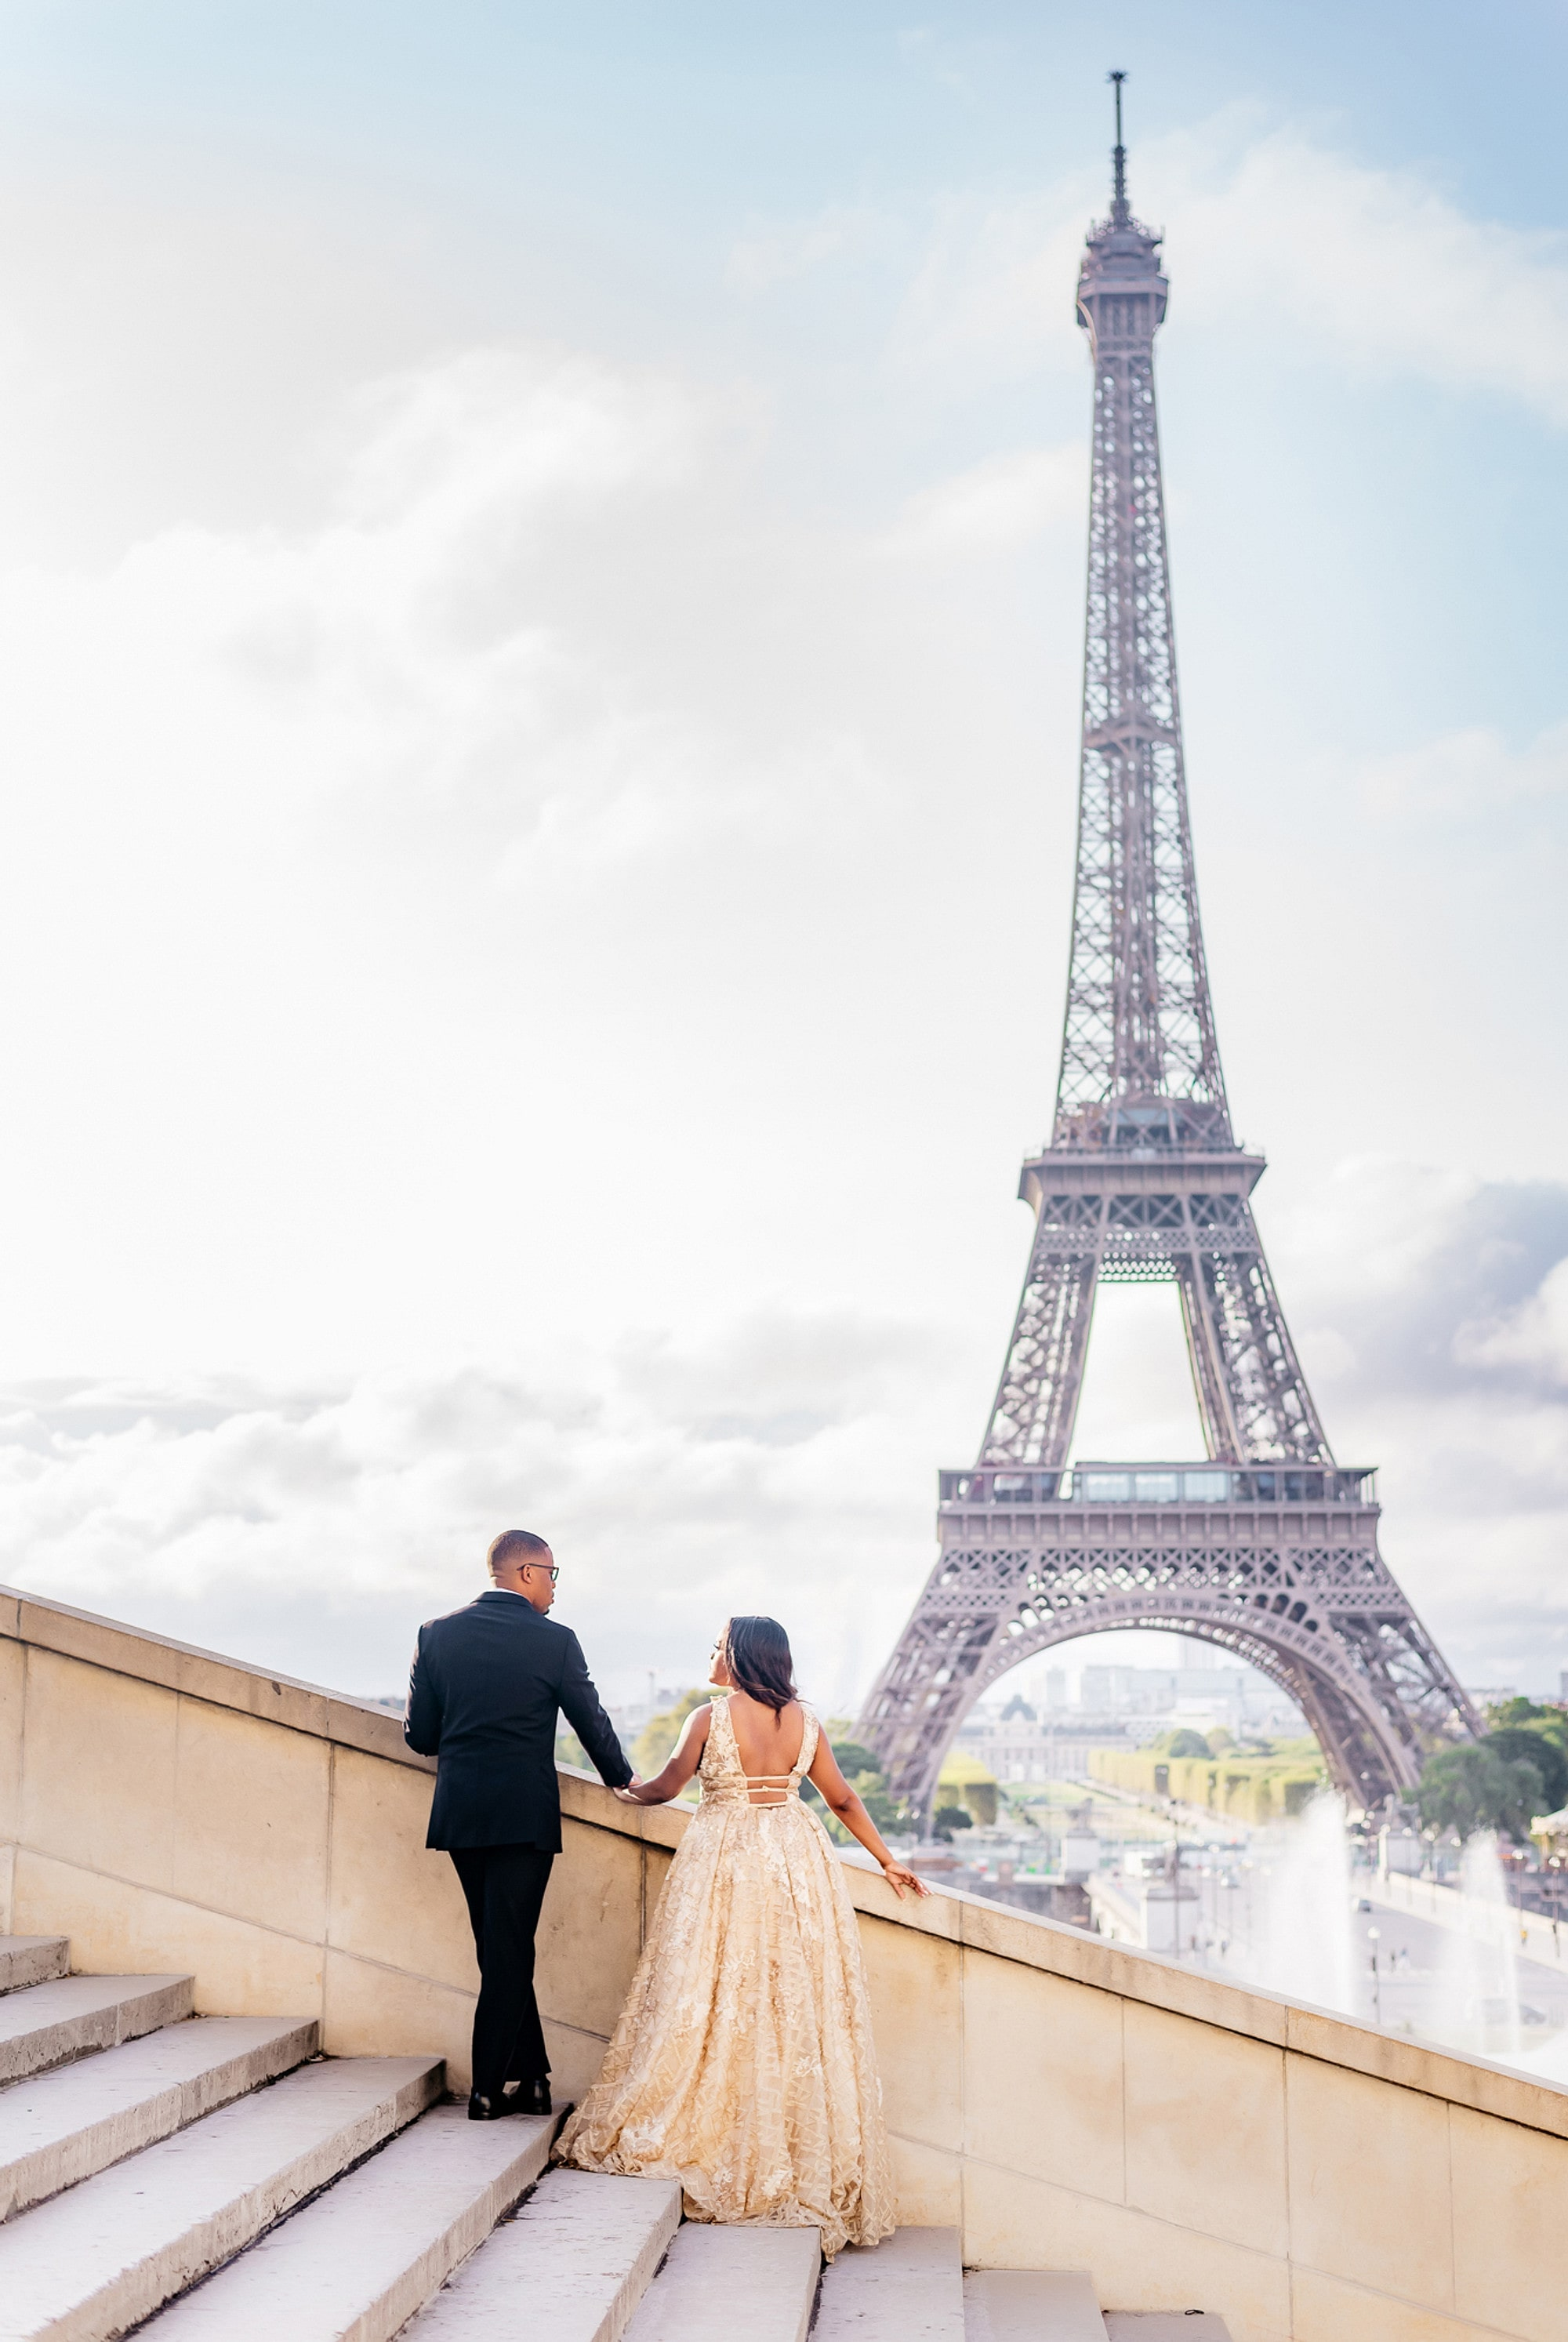 Leah & Olabode's Dreamy Destination Proposal In Front of the Eiffel Tower, Photography by DO IT PARIS WAY for Luxury Destination Wedding blog Adriana Weddings